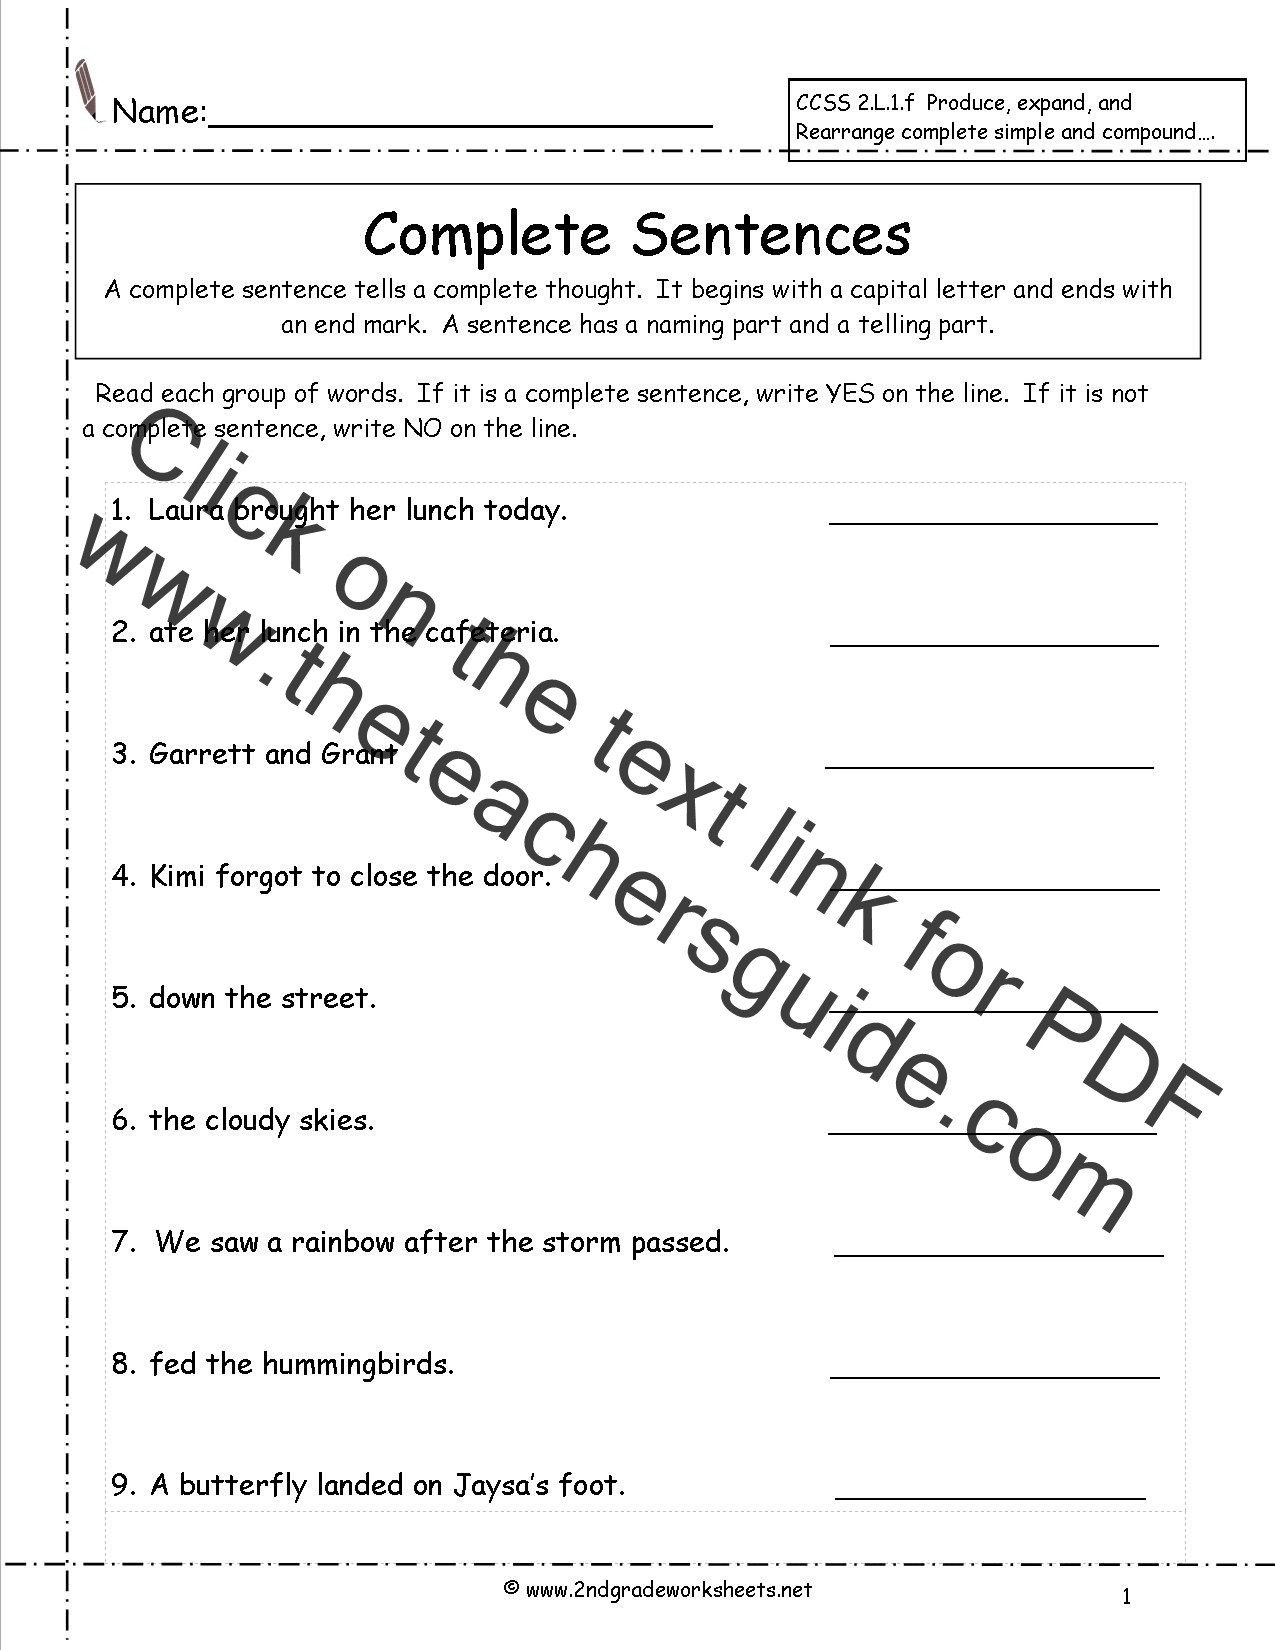 Complete Sentence Worksheet 3rd Grade Second Grade Sentences Worksheets Ccss 2 L 1 F Worksheets